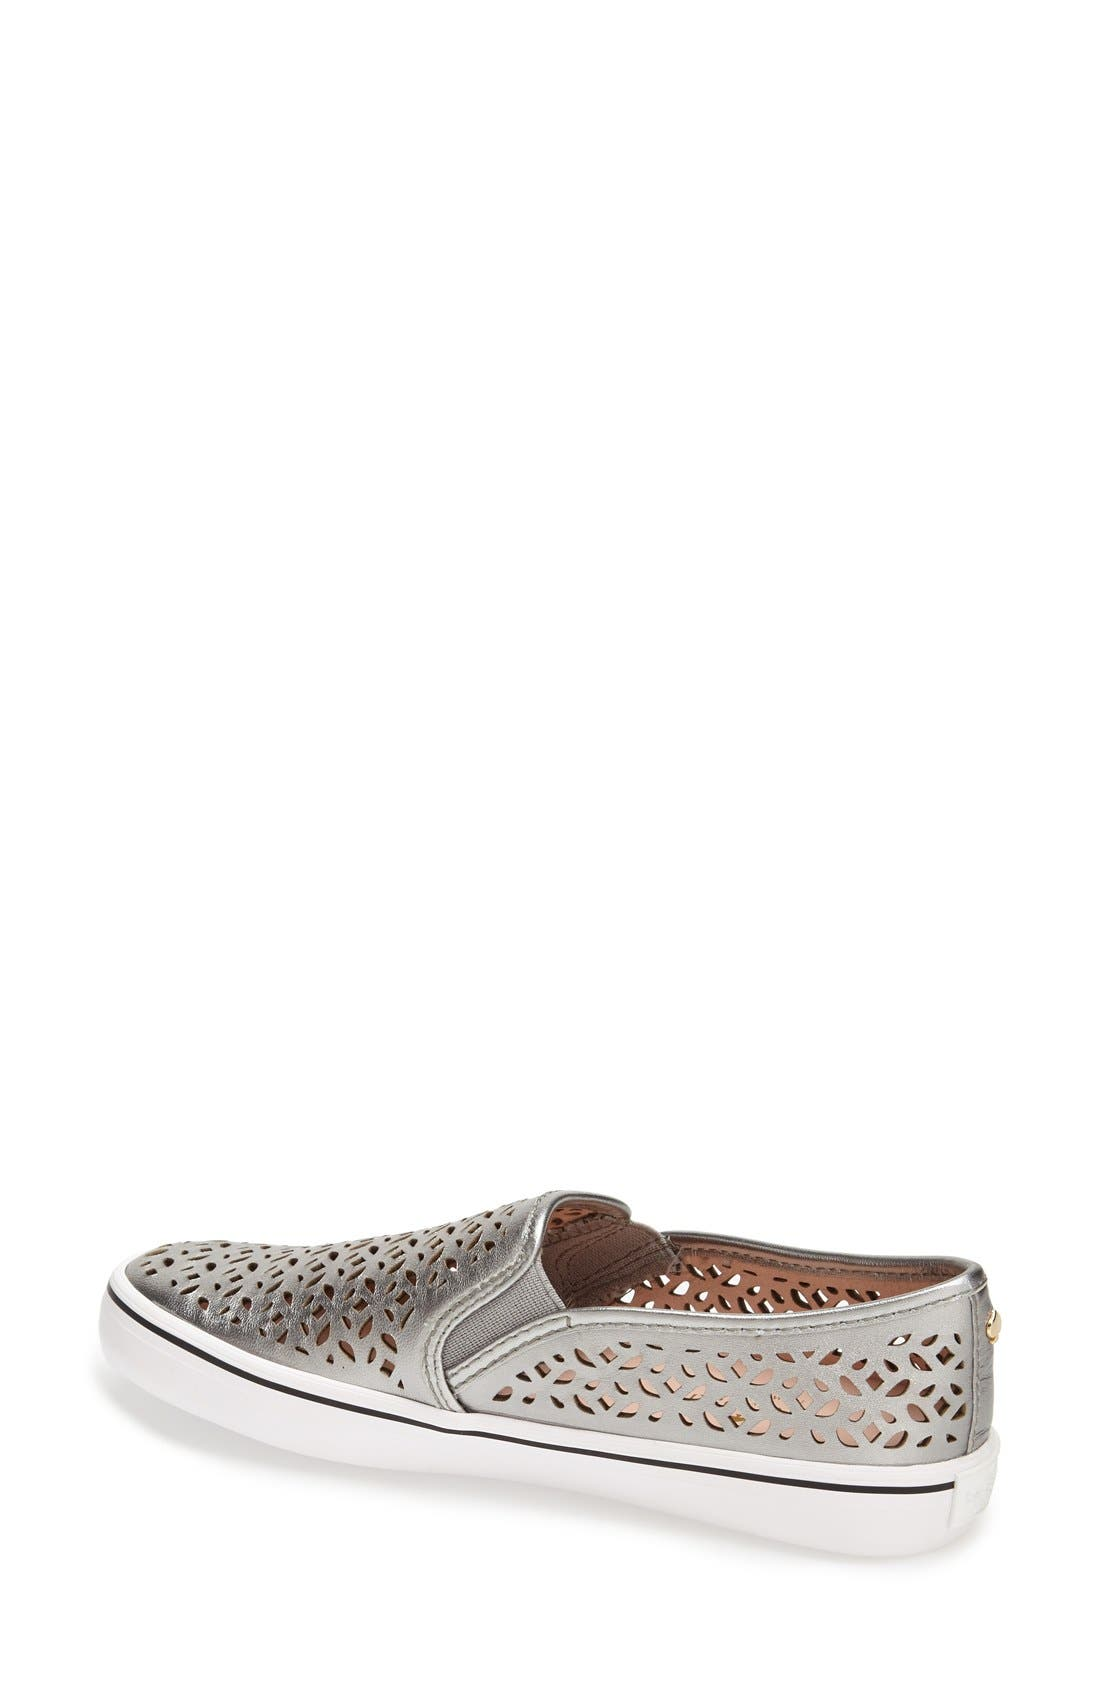 Alternate Image 2  - kate spade new york 'saddie' slip-on sneaker (Women)